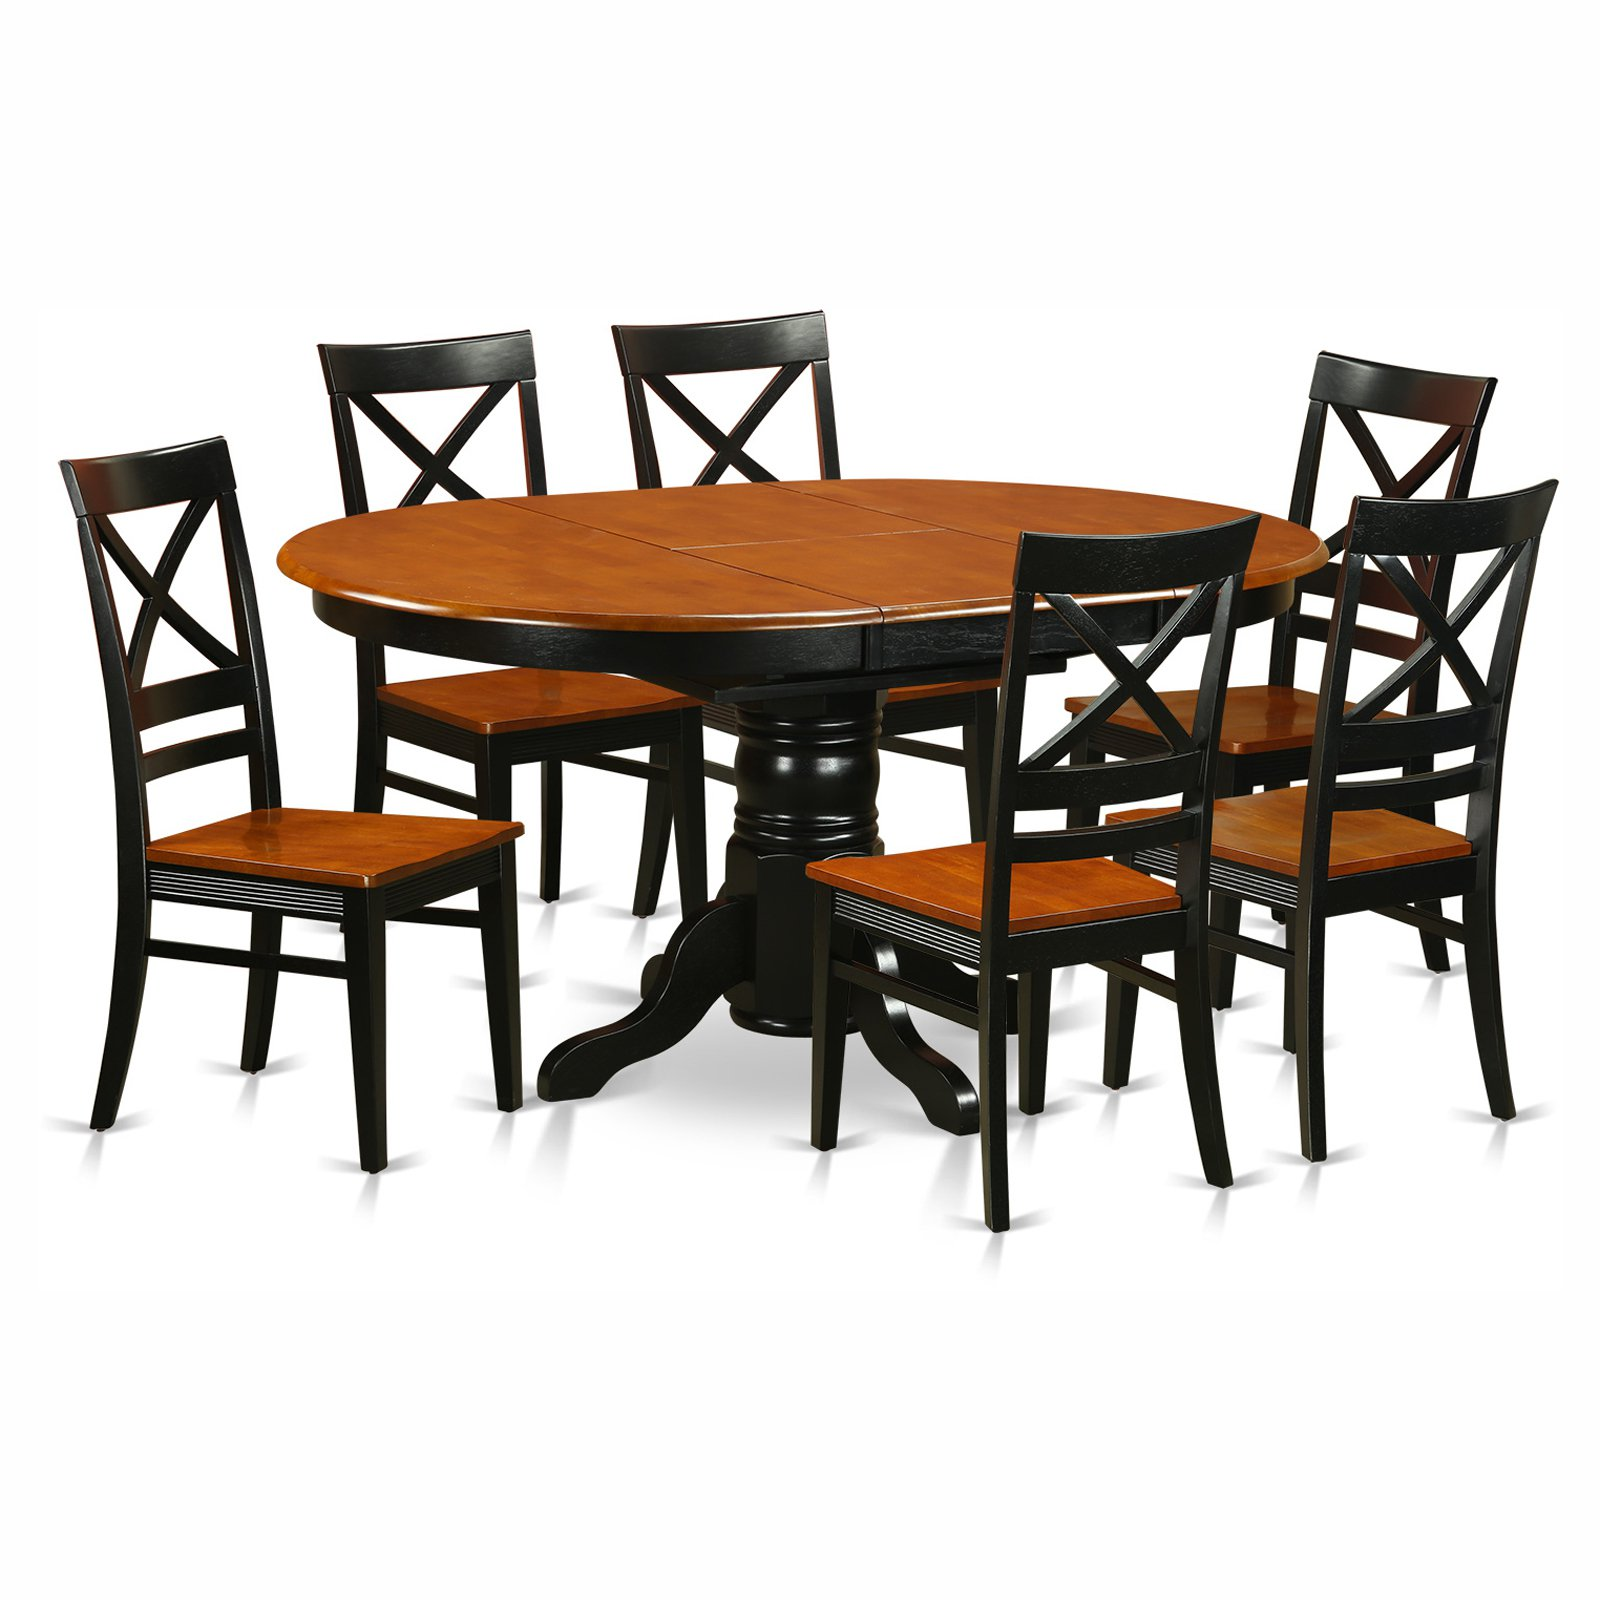 East West Furniture Avon 7 Piece Pedestal Oval Dining Table Set With Quincy Wooden Seat Chairs Walmart Com Walmart Com